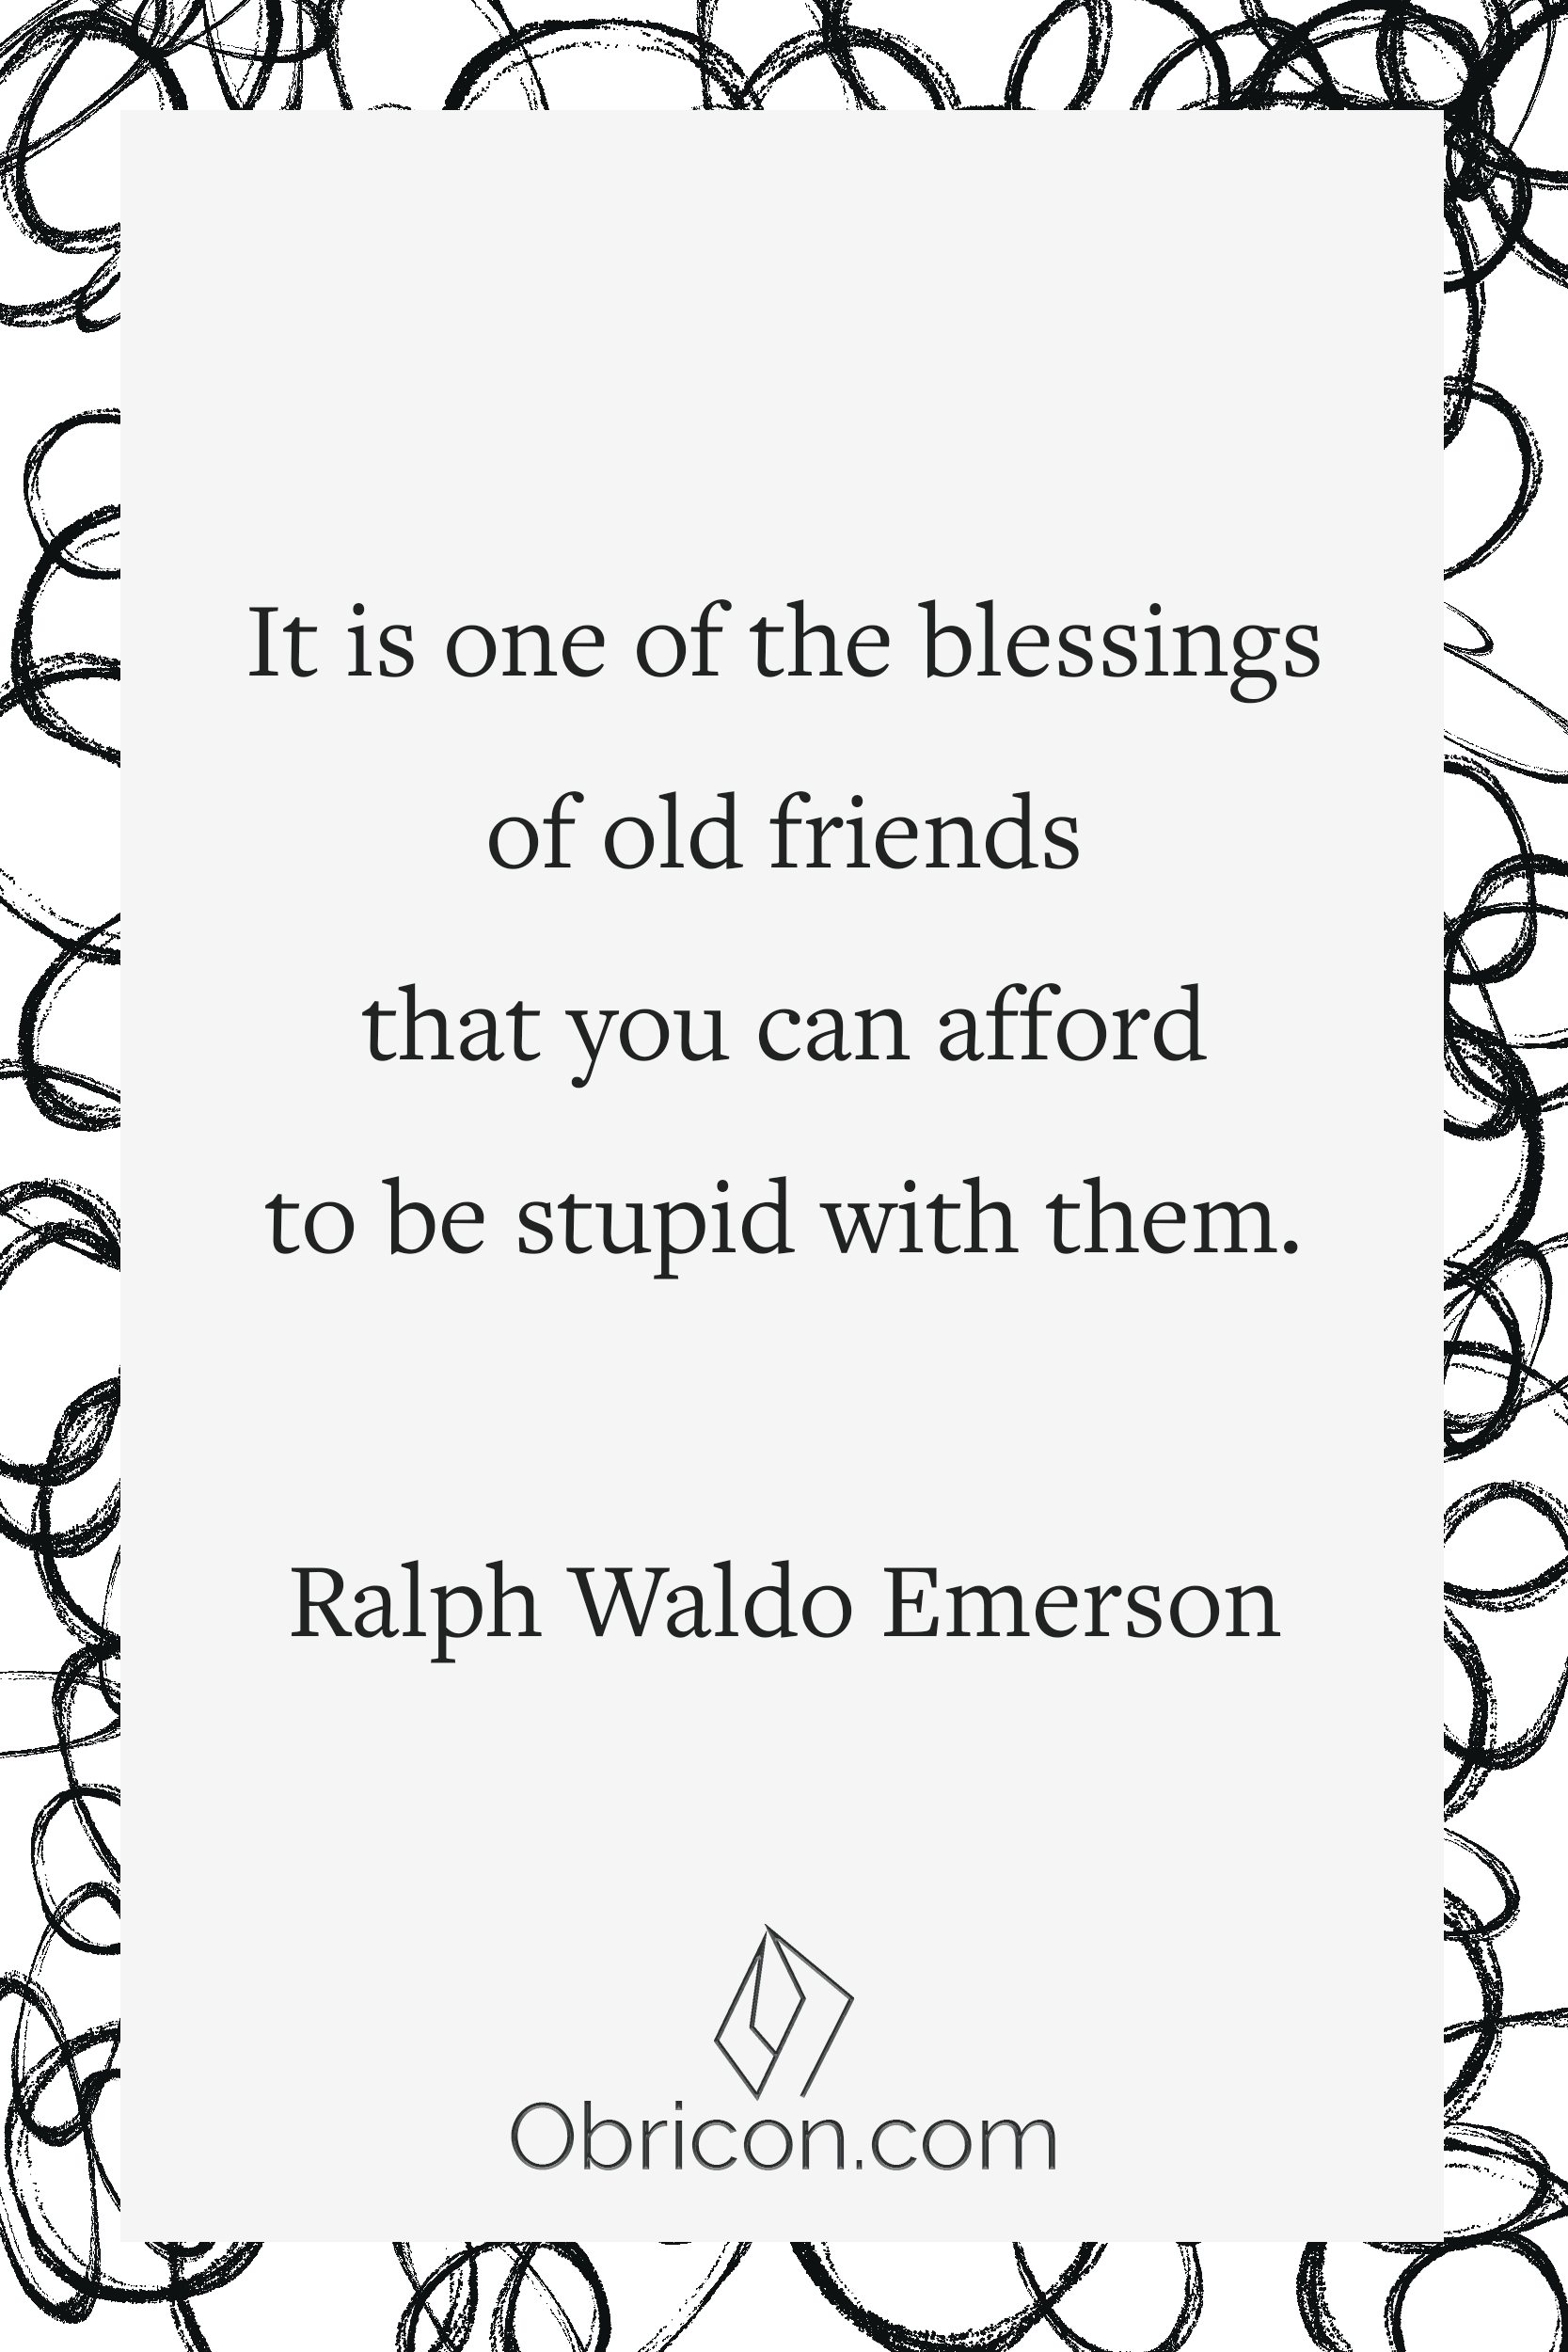 It is one of the blessings of old friends that you can afford to be stupid with them. Ralph Waldo Emerson.png